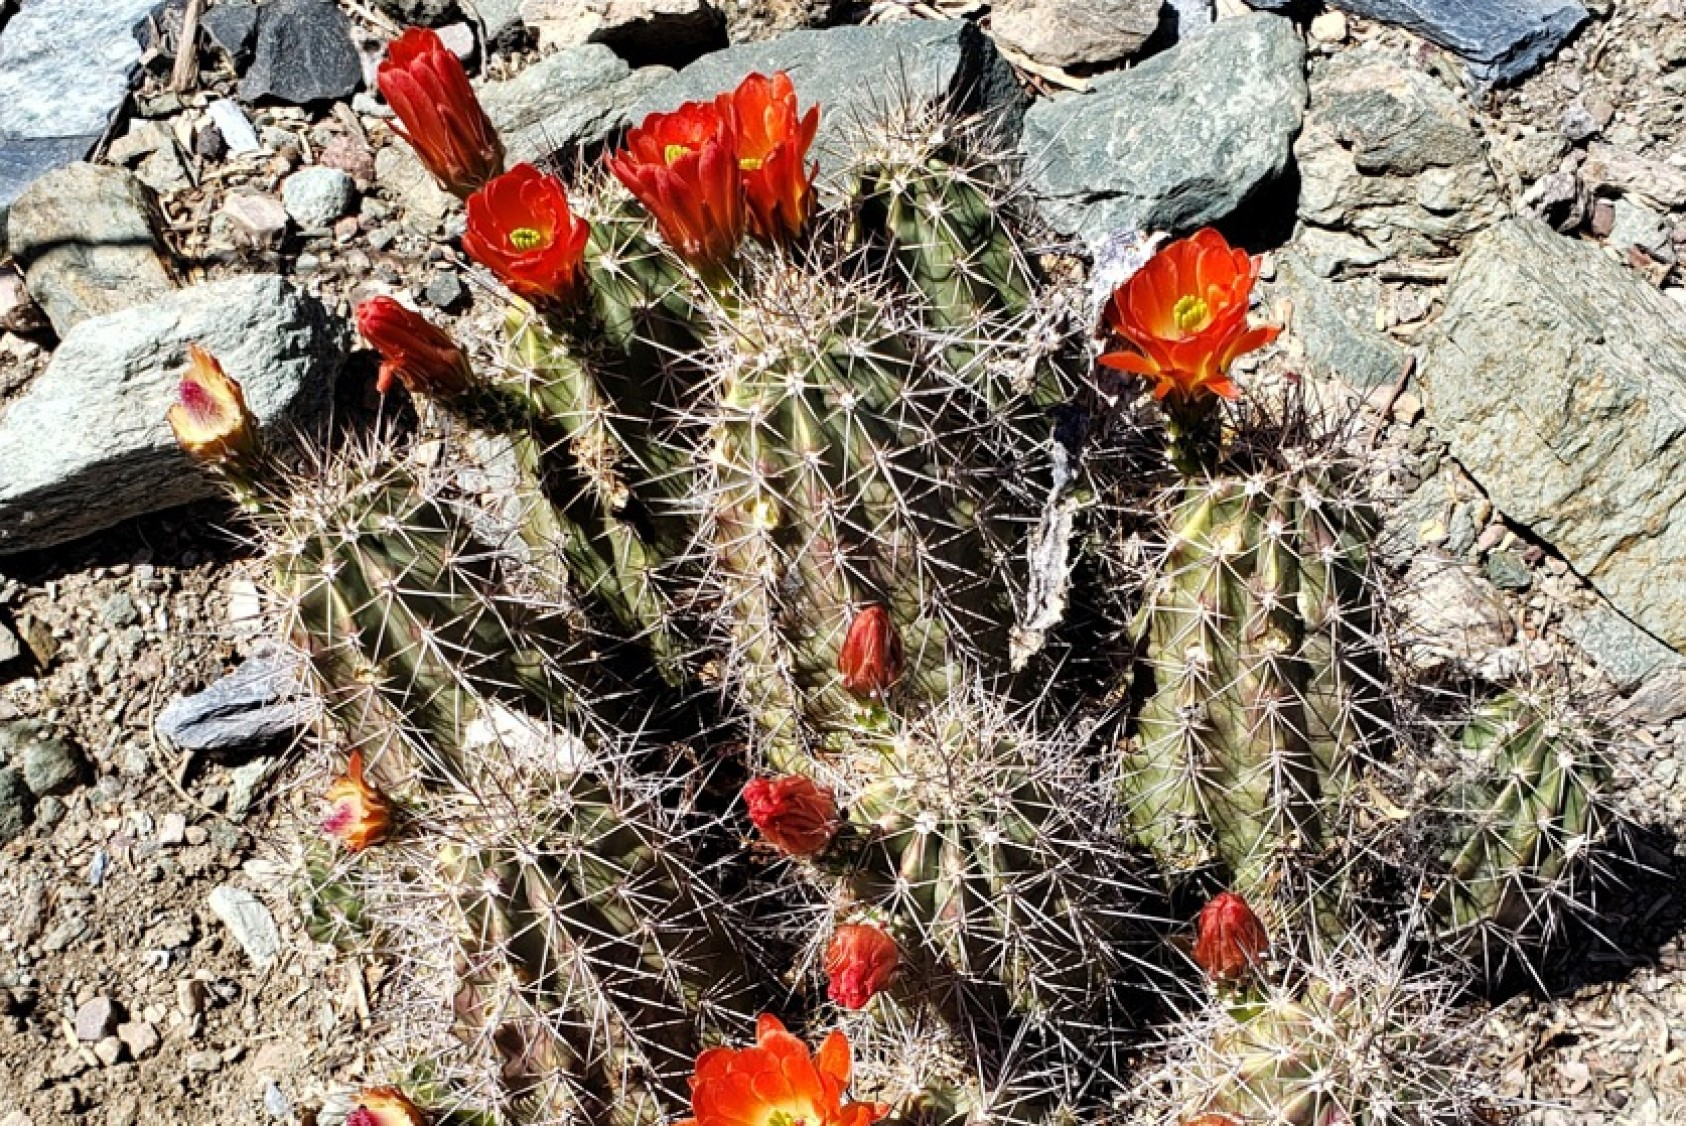 """Opuntia basilaris, or beavertail prickly pear, is one of the more than 100 species of prickly pear cacti. """"Both the fruit (tuna) and the nopal (paddle) are edible and used in various delicious dishes,"""" Rodo says."""